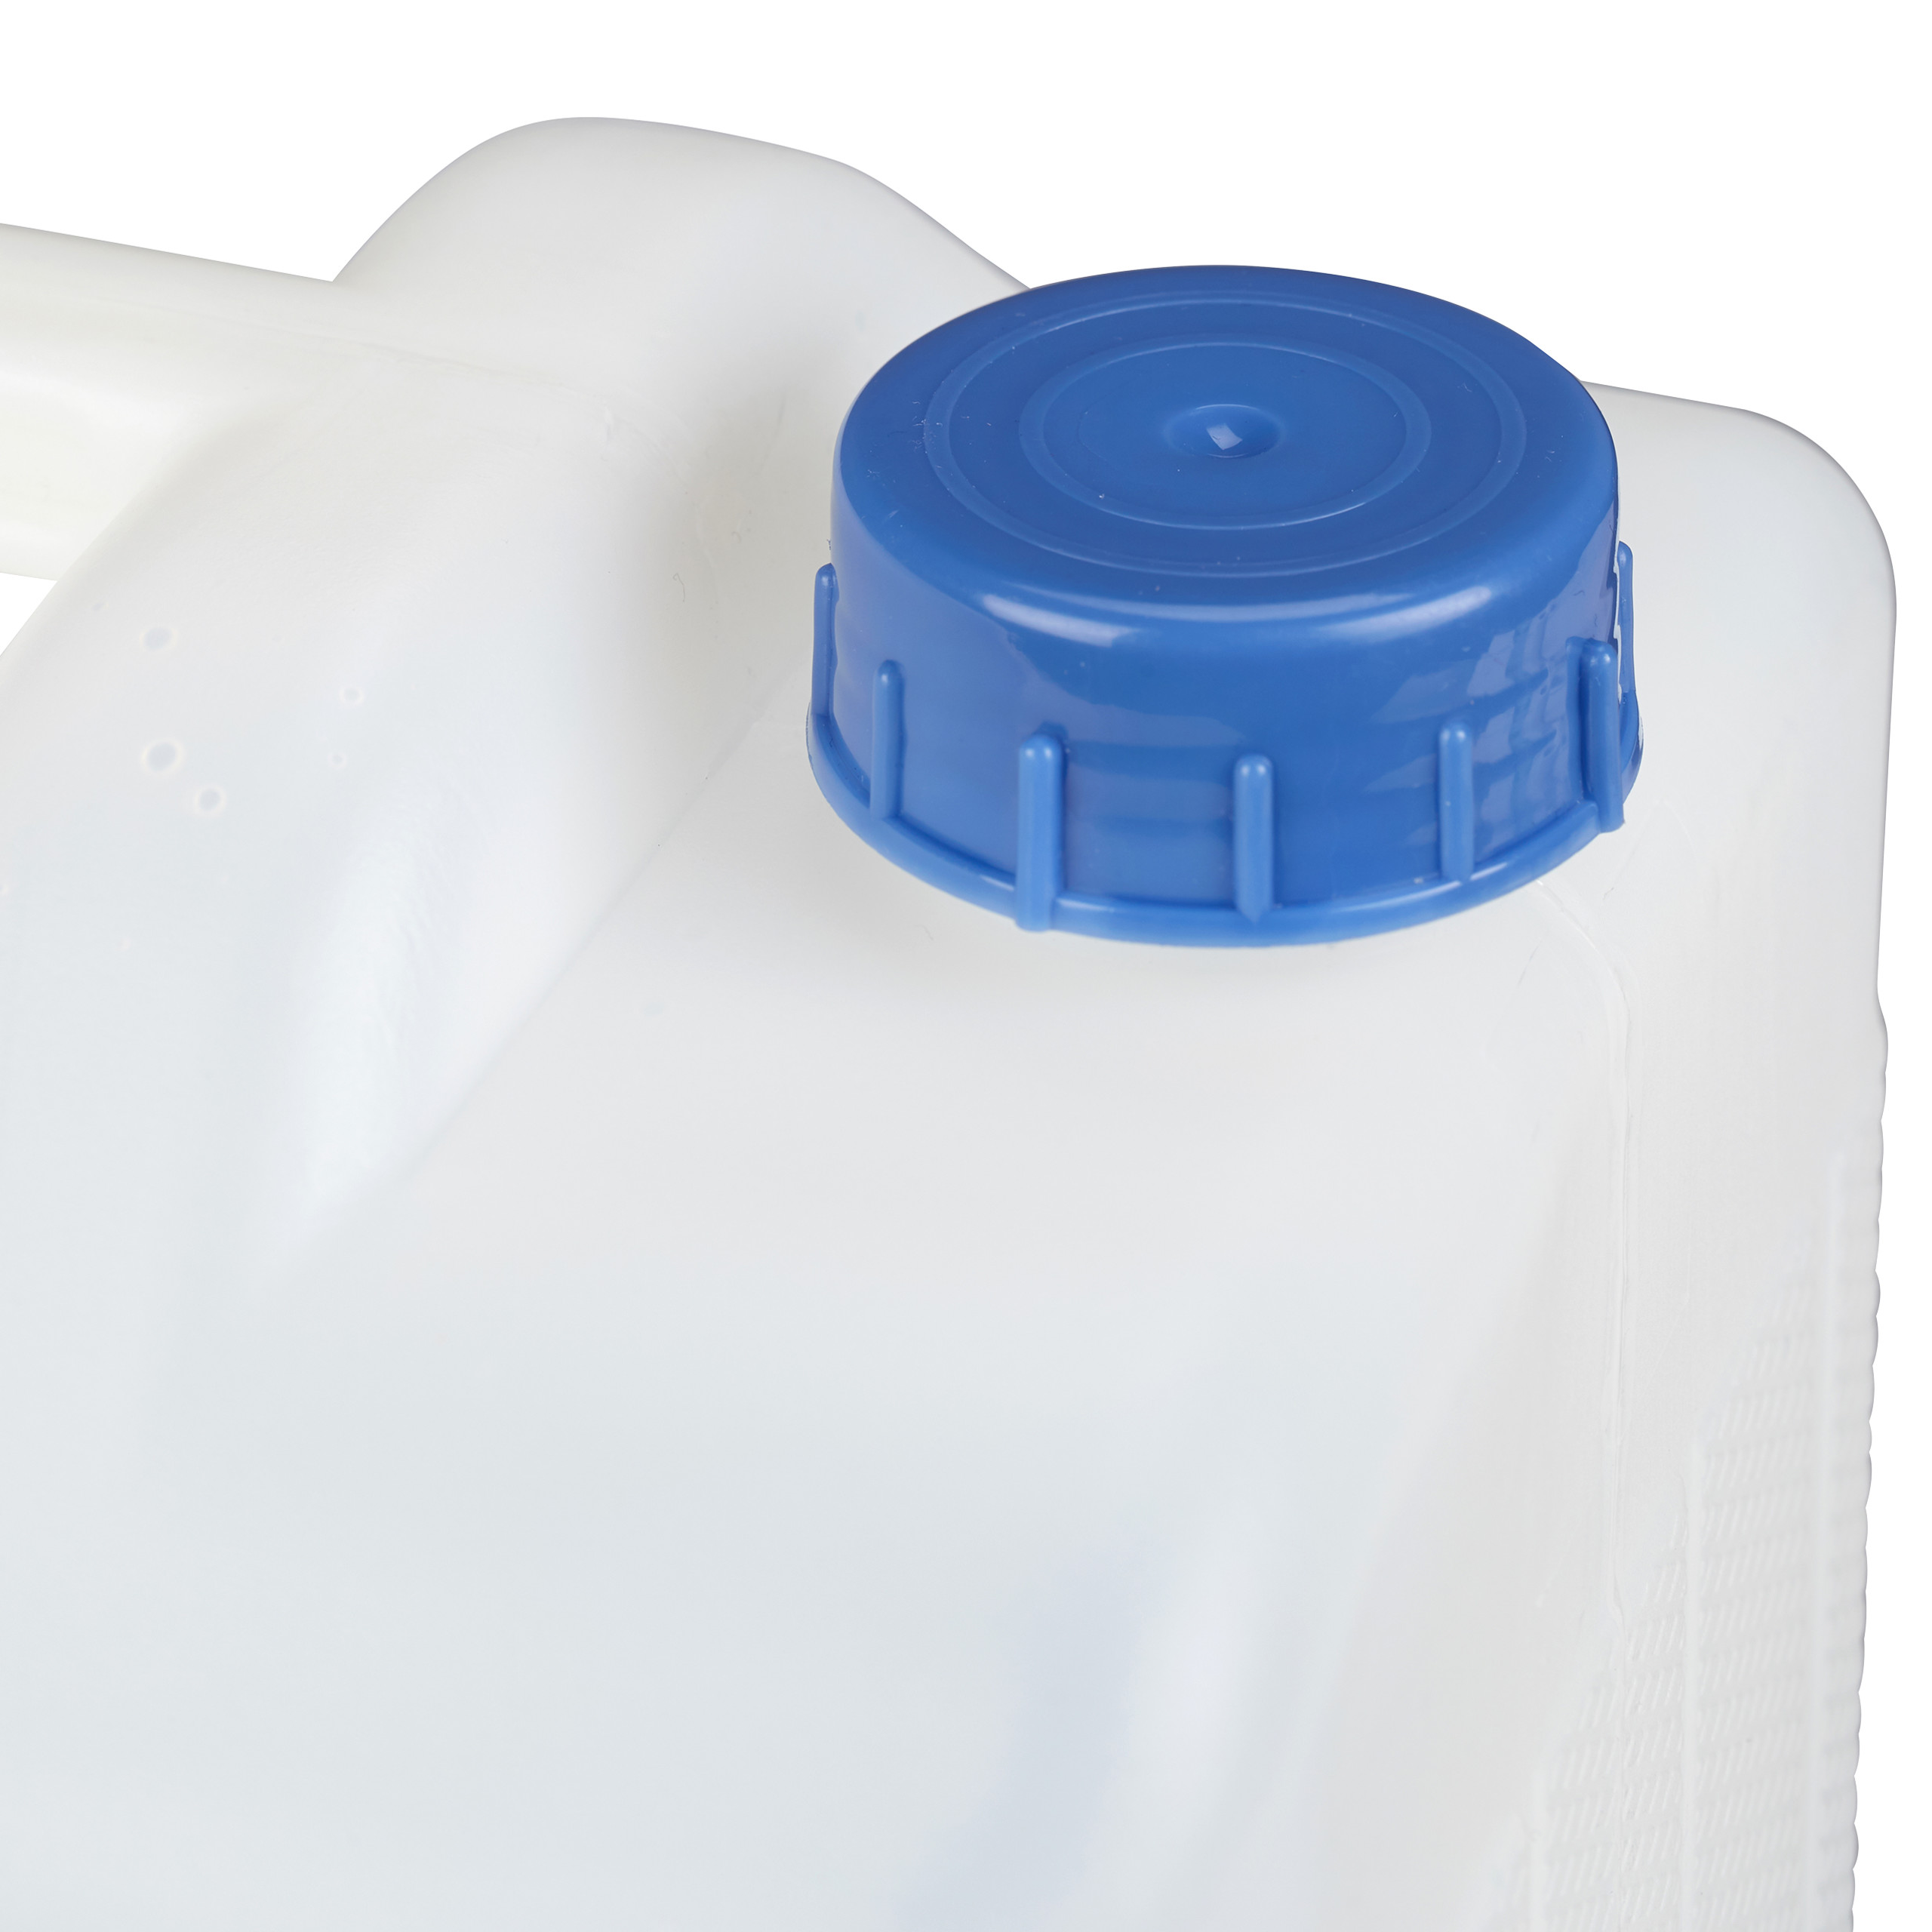 thumbnail 14 - Water Canister, Spigot, Jerrycan, Water Jug, Plastic Container